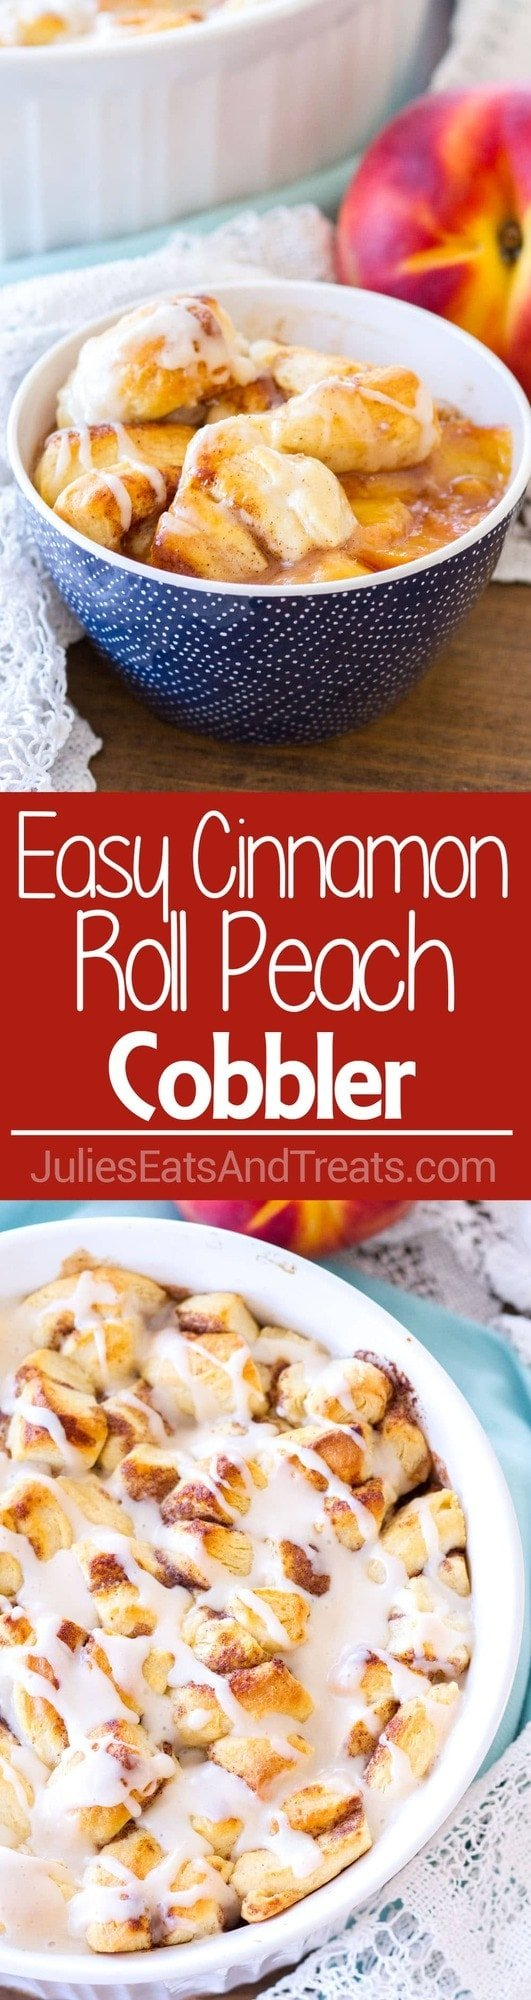 Easy Cinnamon Roll Peach Cobbler ~ Made with Fresh Peaches, Spices, and Pre-Made Cinnamon Roll Dough. Topped with a Sweet Vanilla Glaze, Making this a Quick and Easy Summer Dessert!